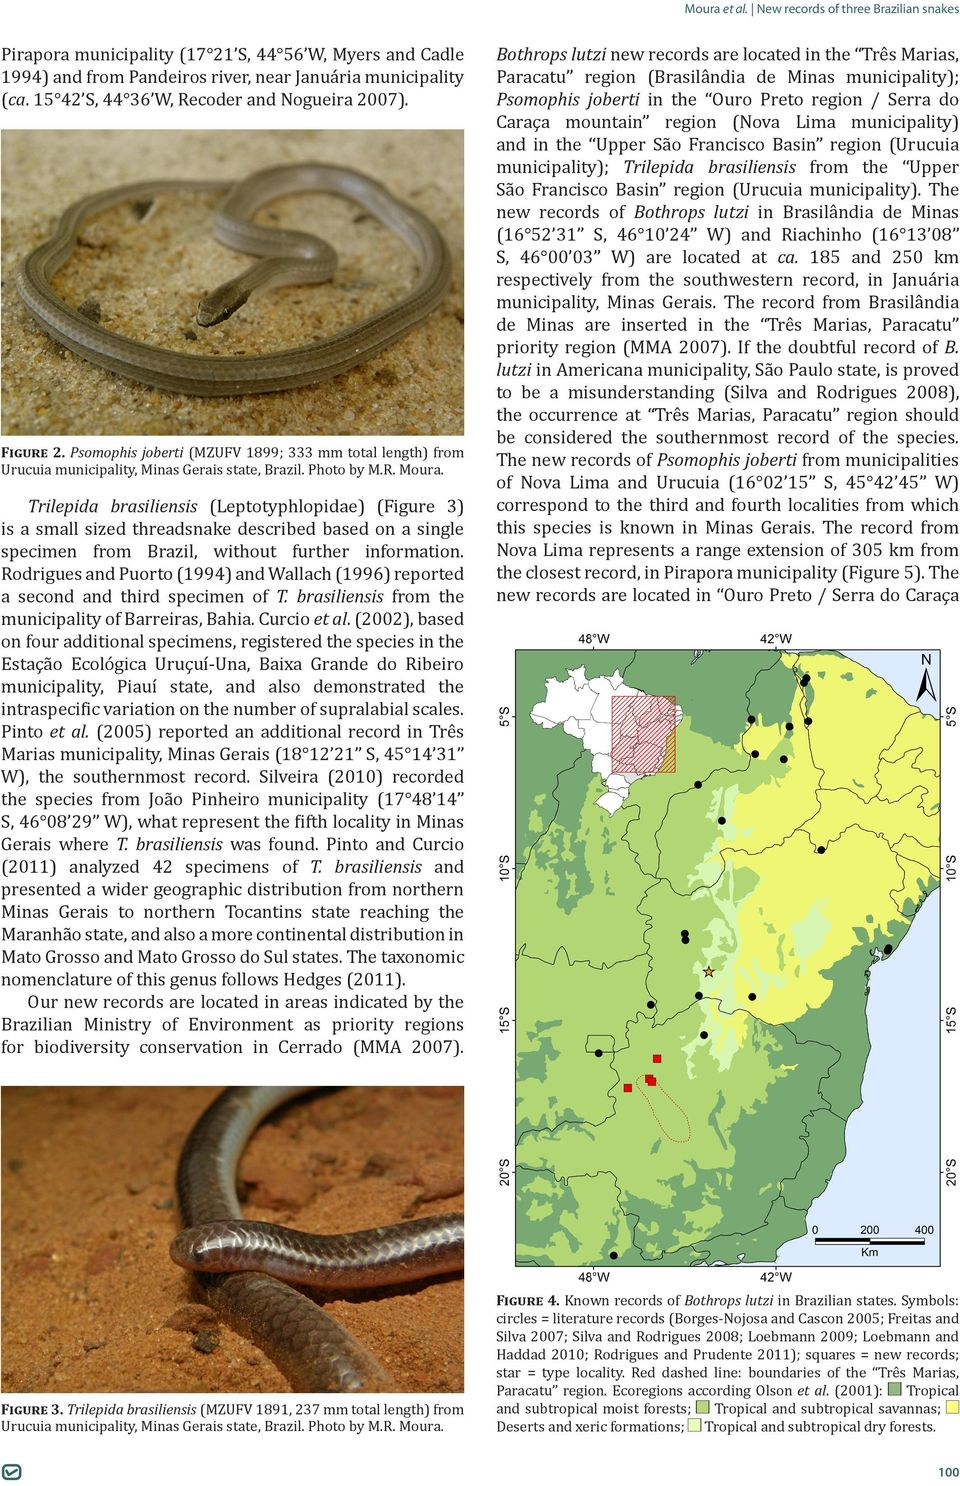 Trilepida brasiliensis (Leptotyphlopidae) (Figure 3) is a small sized threadsnake described based on a single specimen from Brazil, without further information.